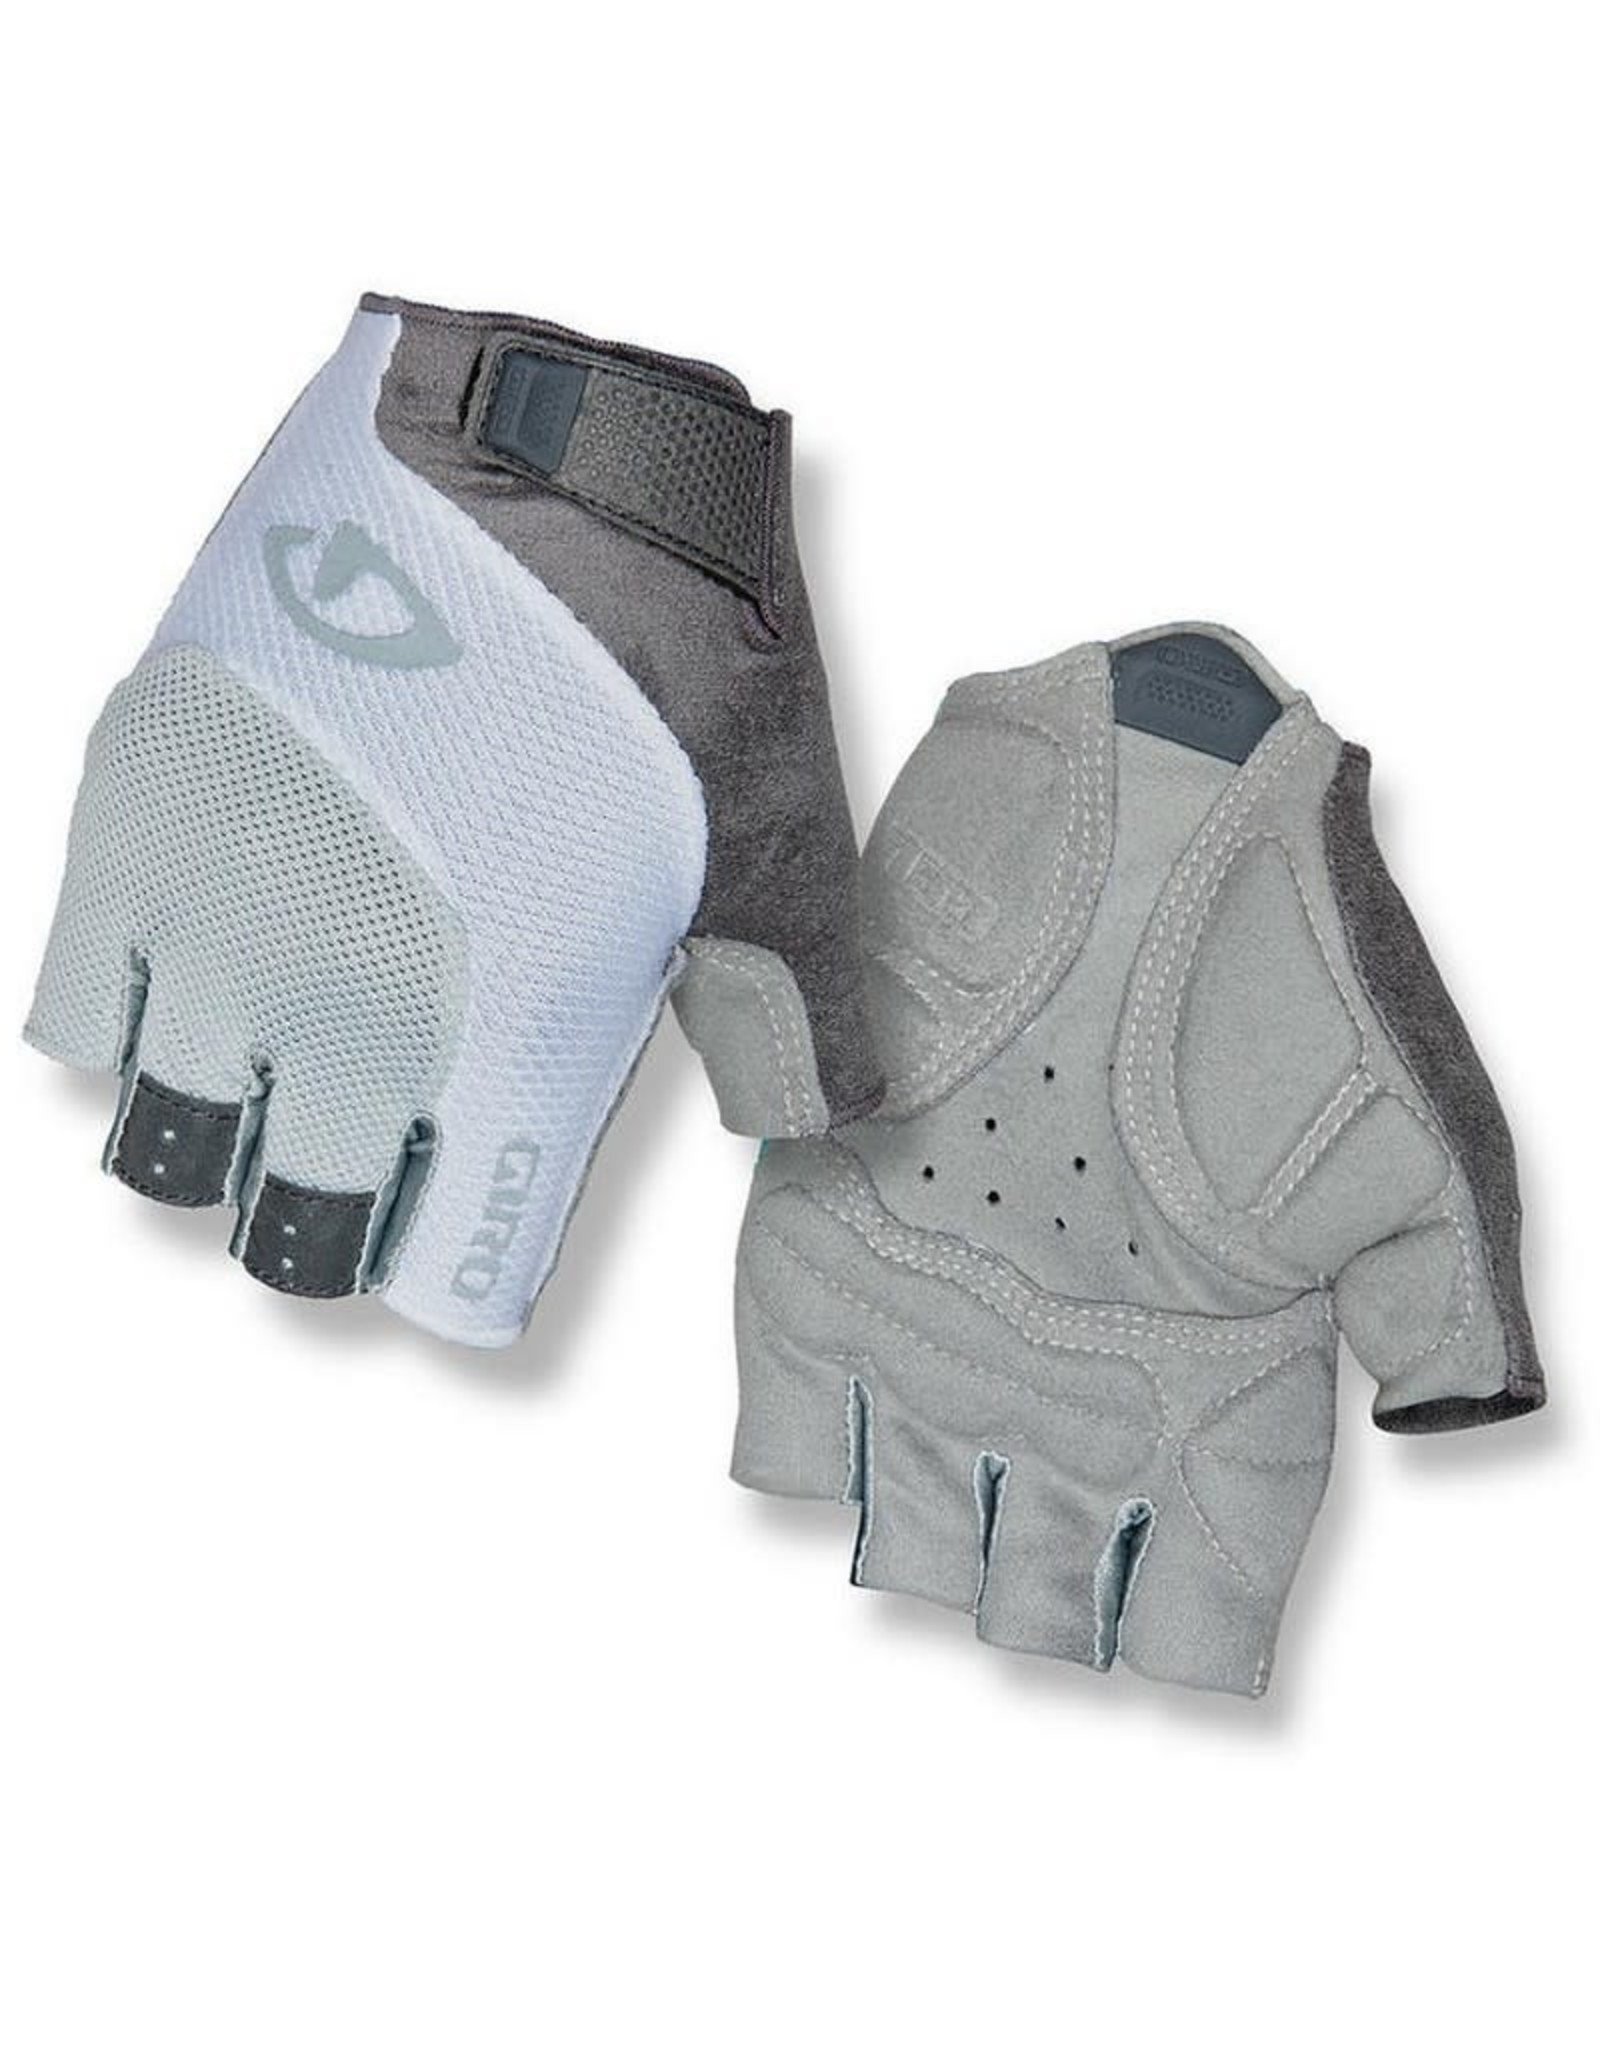 Giro Gloves Giro Tessa Gray/White Women